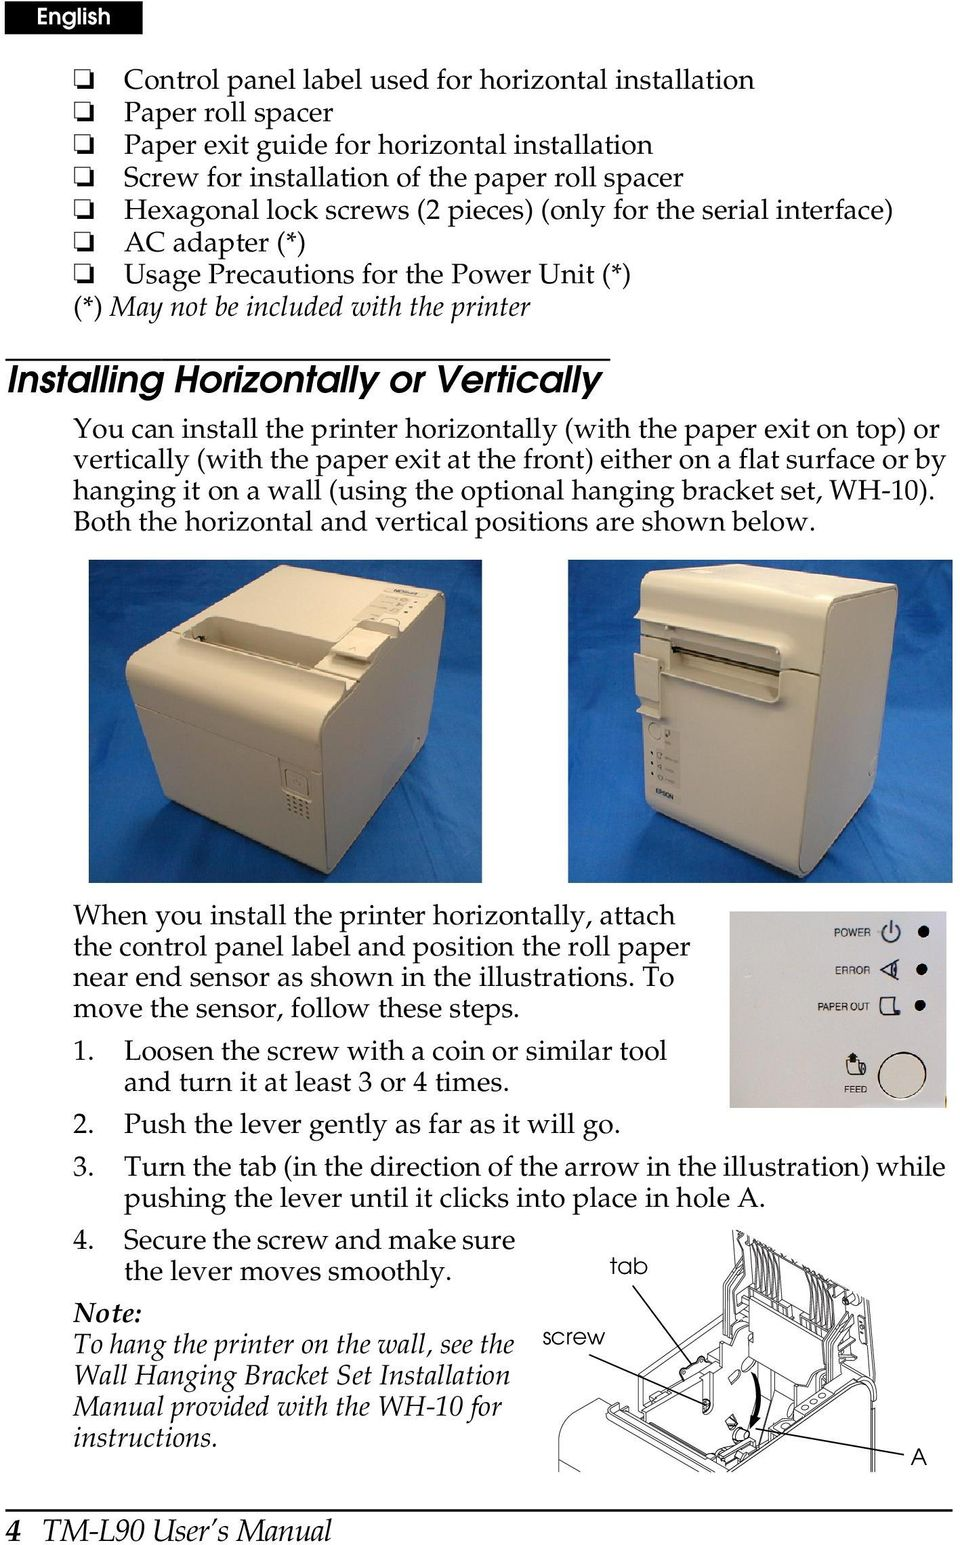 printer horizontally (with the paper exit on top) or vertically (with the paper exit at the front) either on a flat surface or by hanging it on a wall (using the optional hanging bracket set, WH-10).